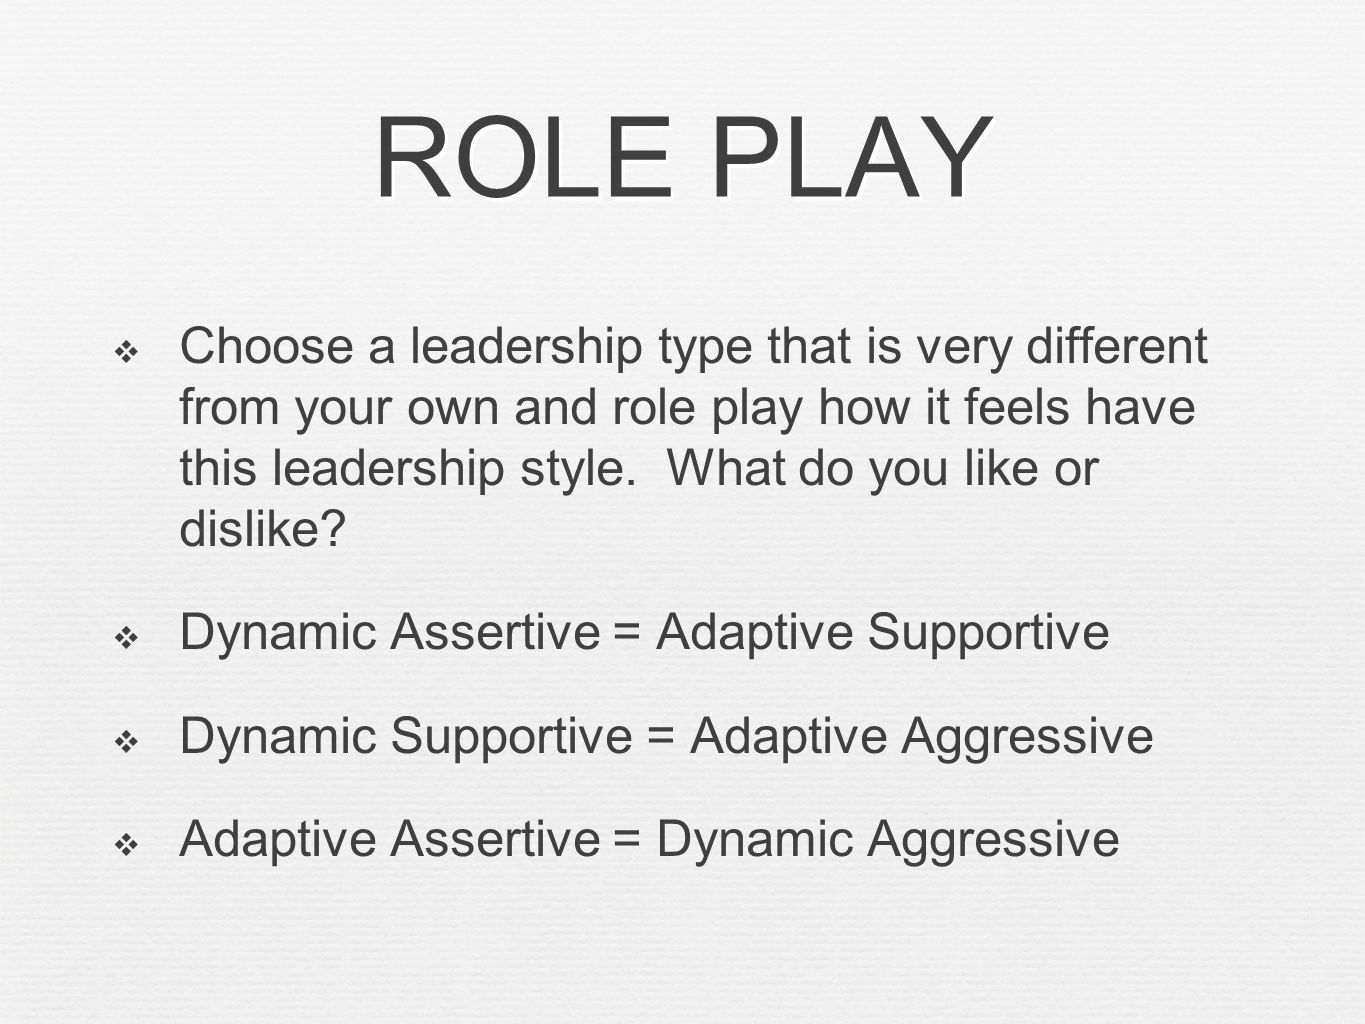 ROLE PLAY Choose a leadership type that is very different from your own and role play how it feels have this leadership style. What do you like or dis